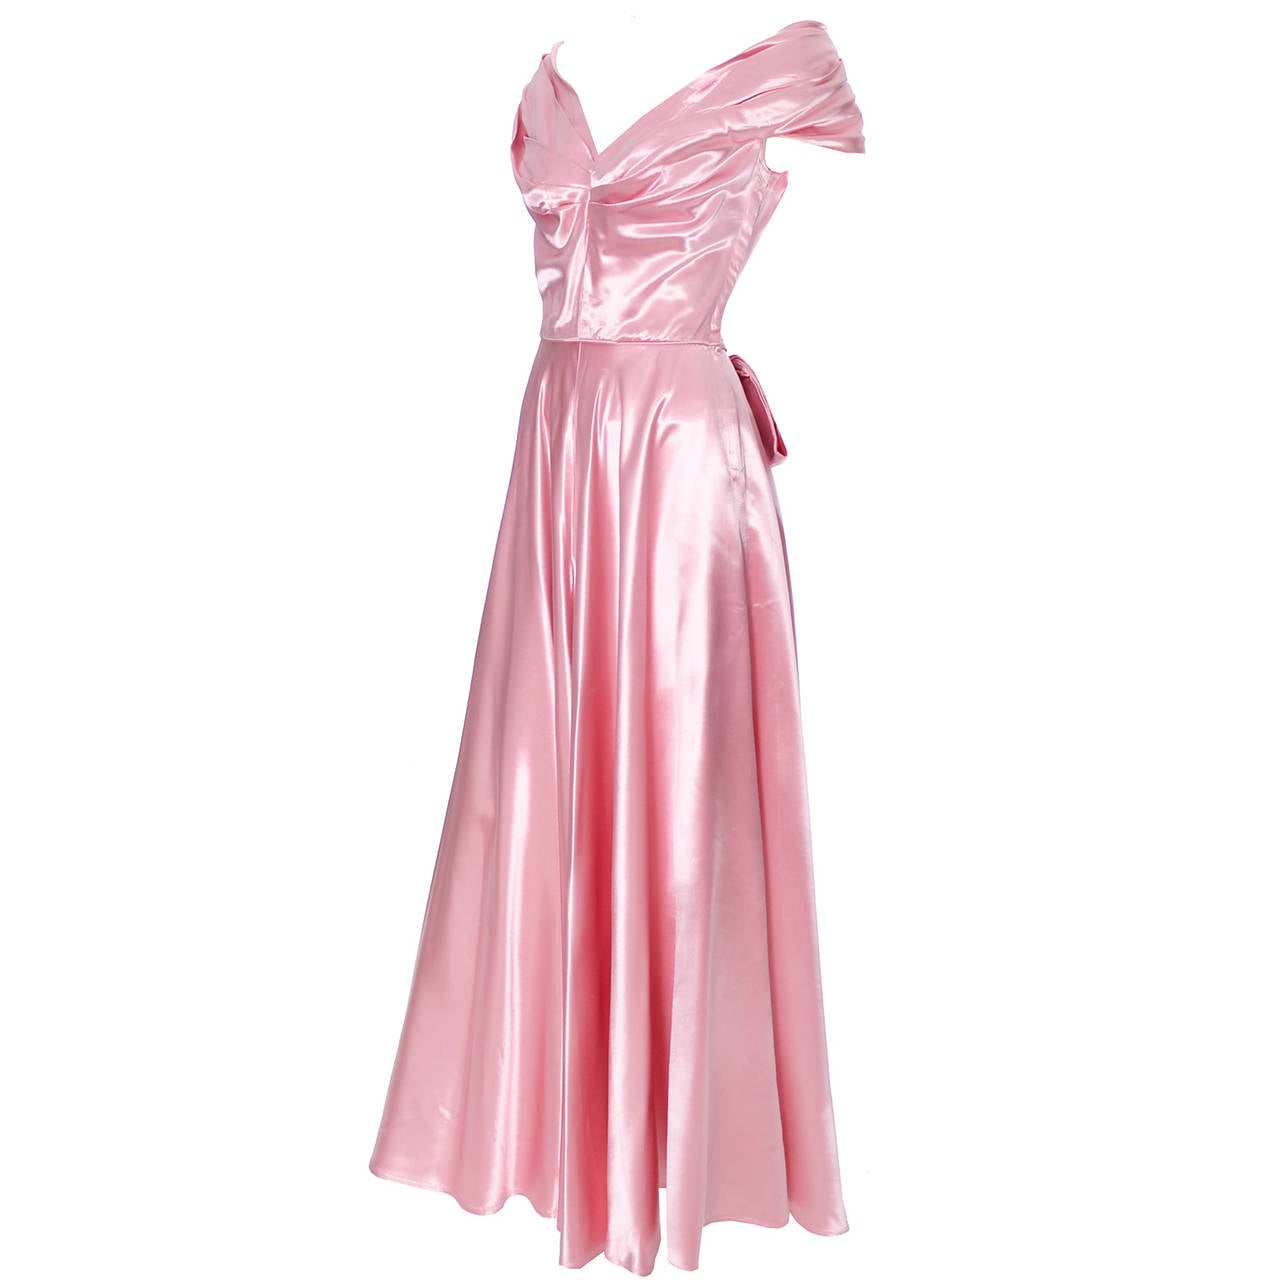 Emma Domb Formal Vintage Dress 1940s Slipper Satin Pink Evening Gown Bridal For Sale